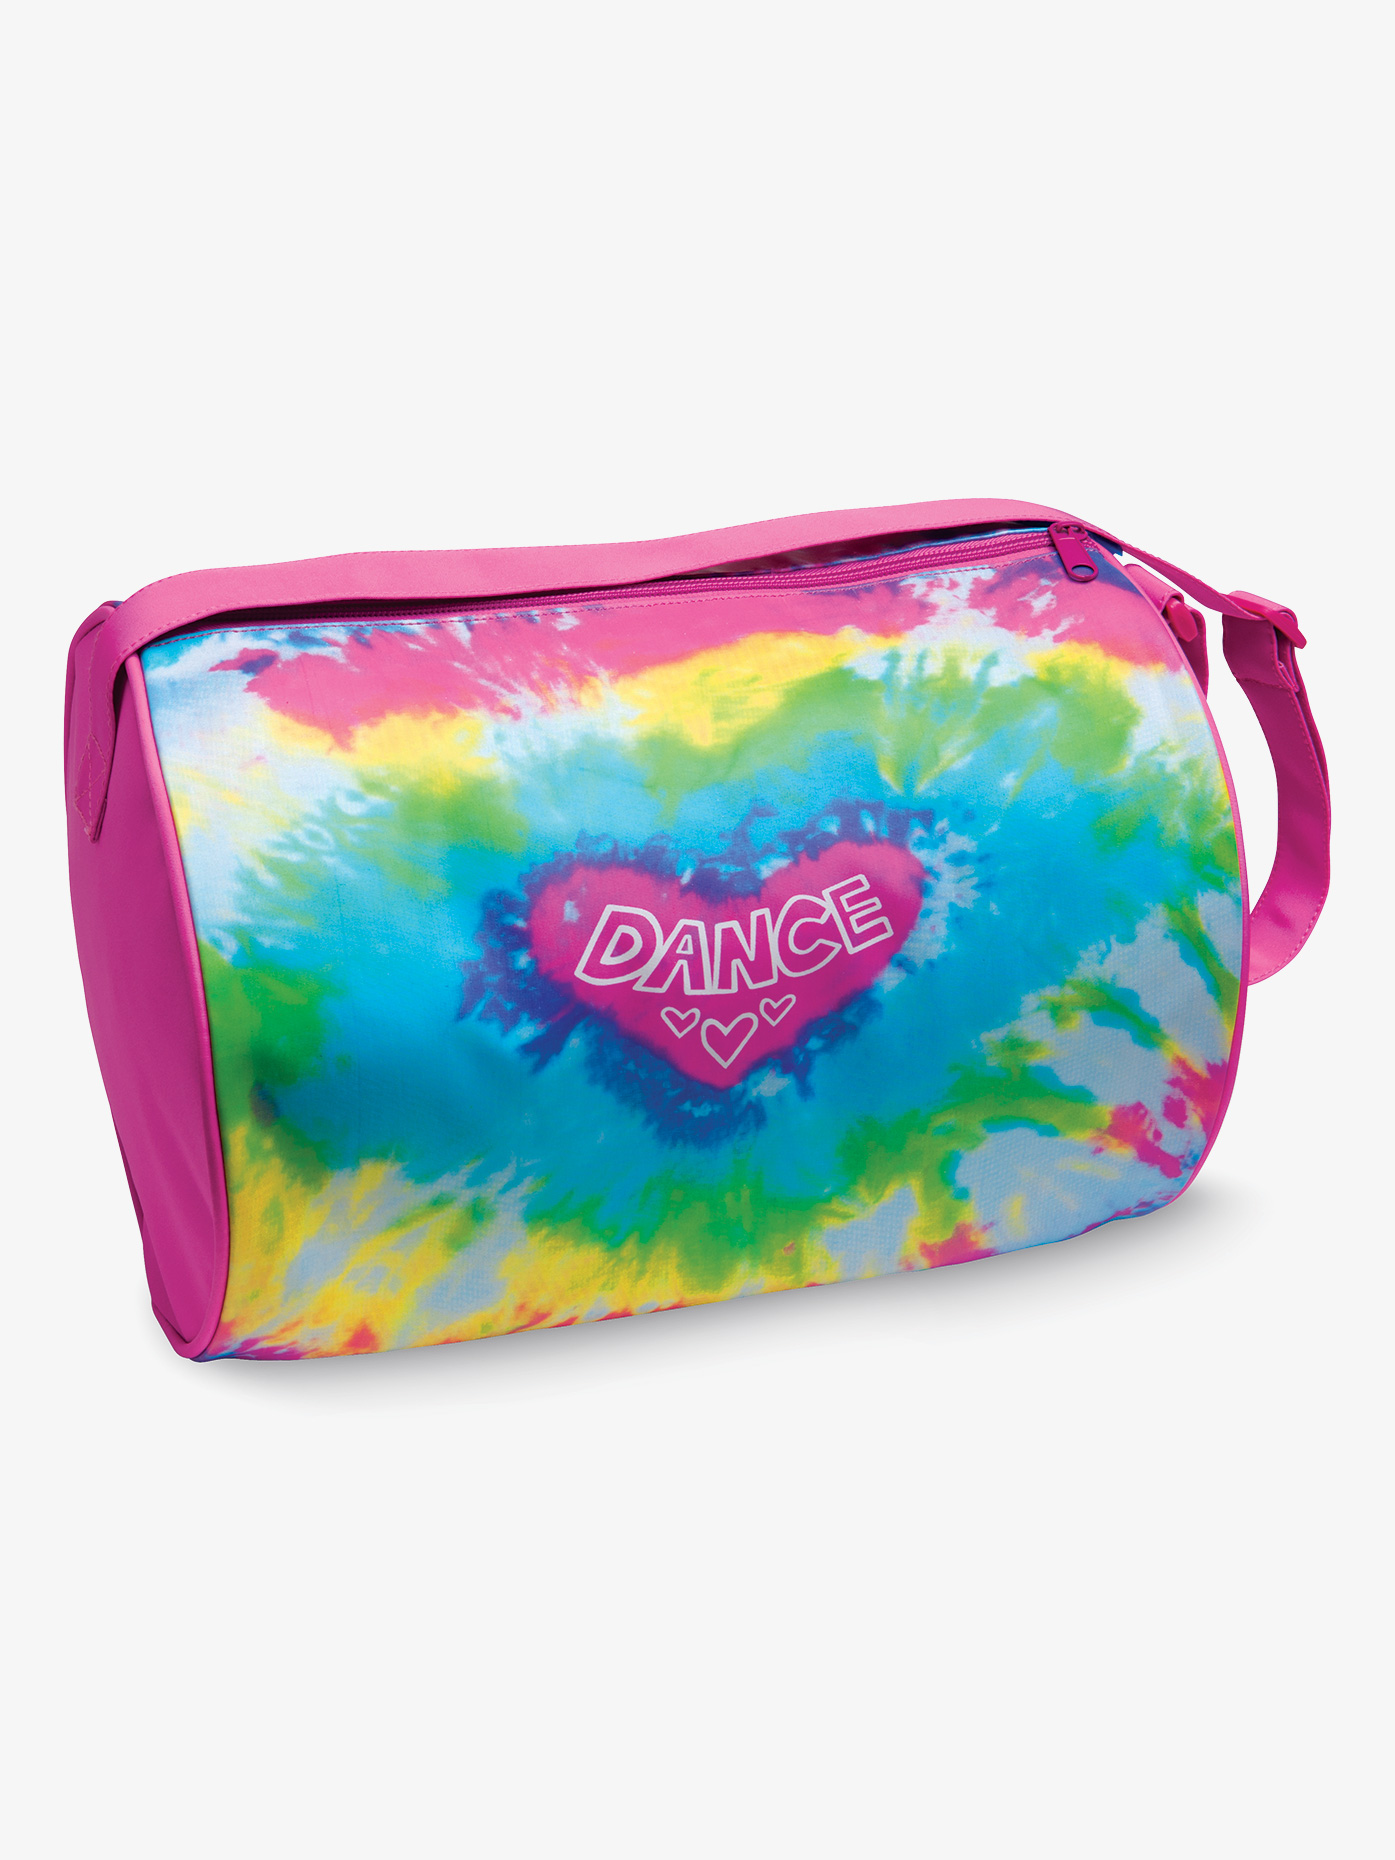 DansBagz Girls Love Tie Dye Duffle Bag B555